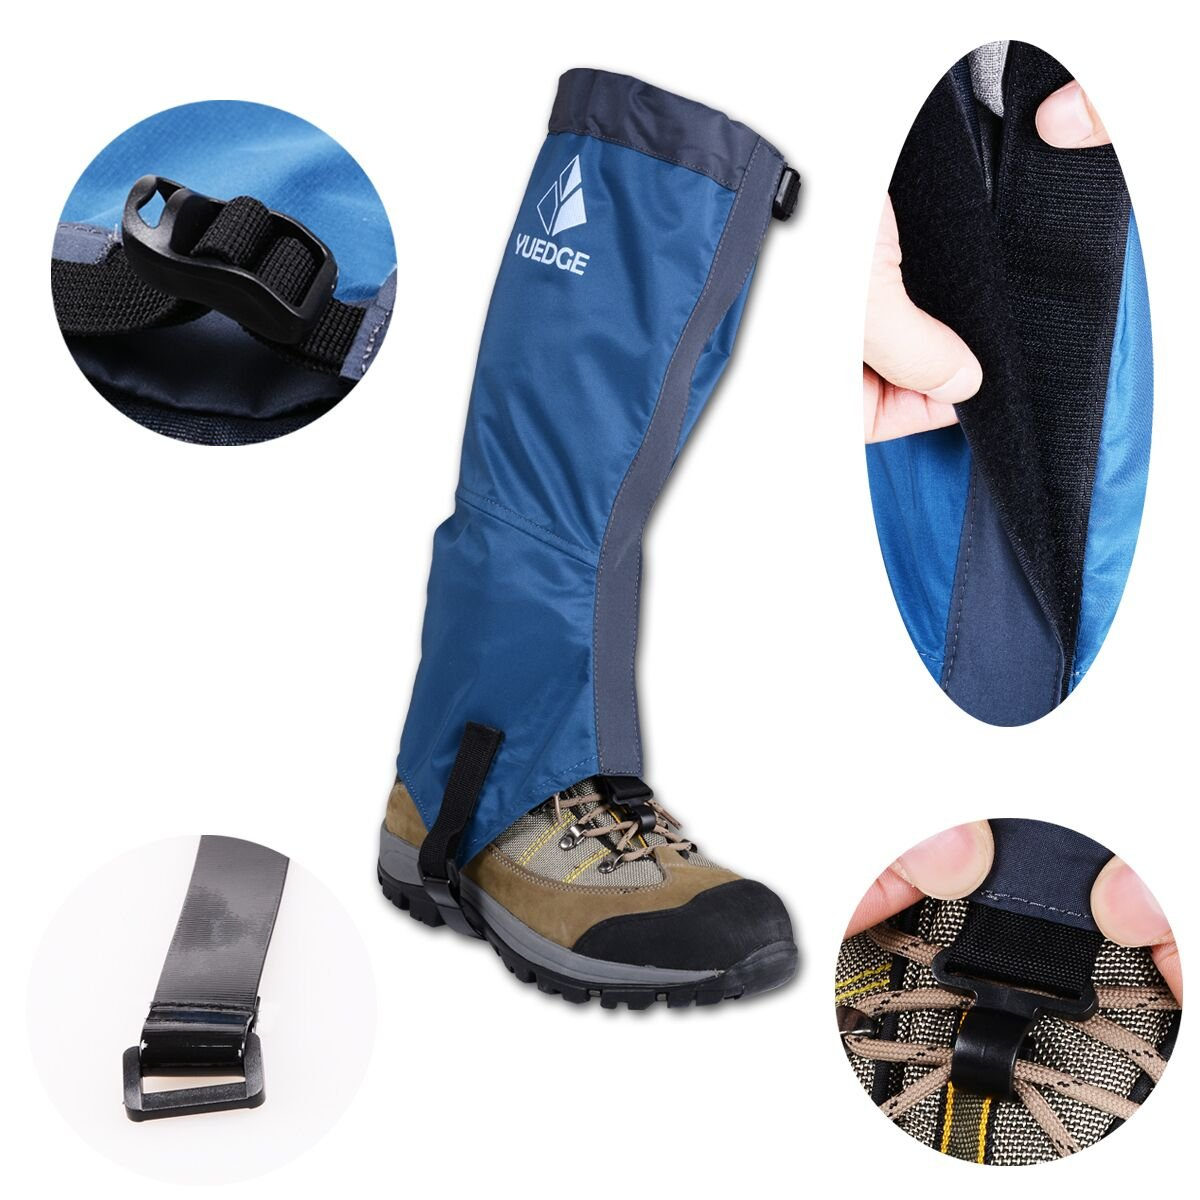 YUEDGE Waterproof Breathable Leg Gaiters for Outdoor Fishing, Research, Hunting, Trimming grass (Blue) by YUEDGE (Image #5)